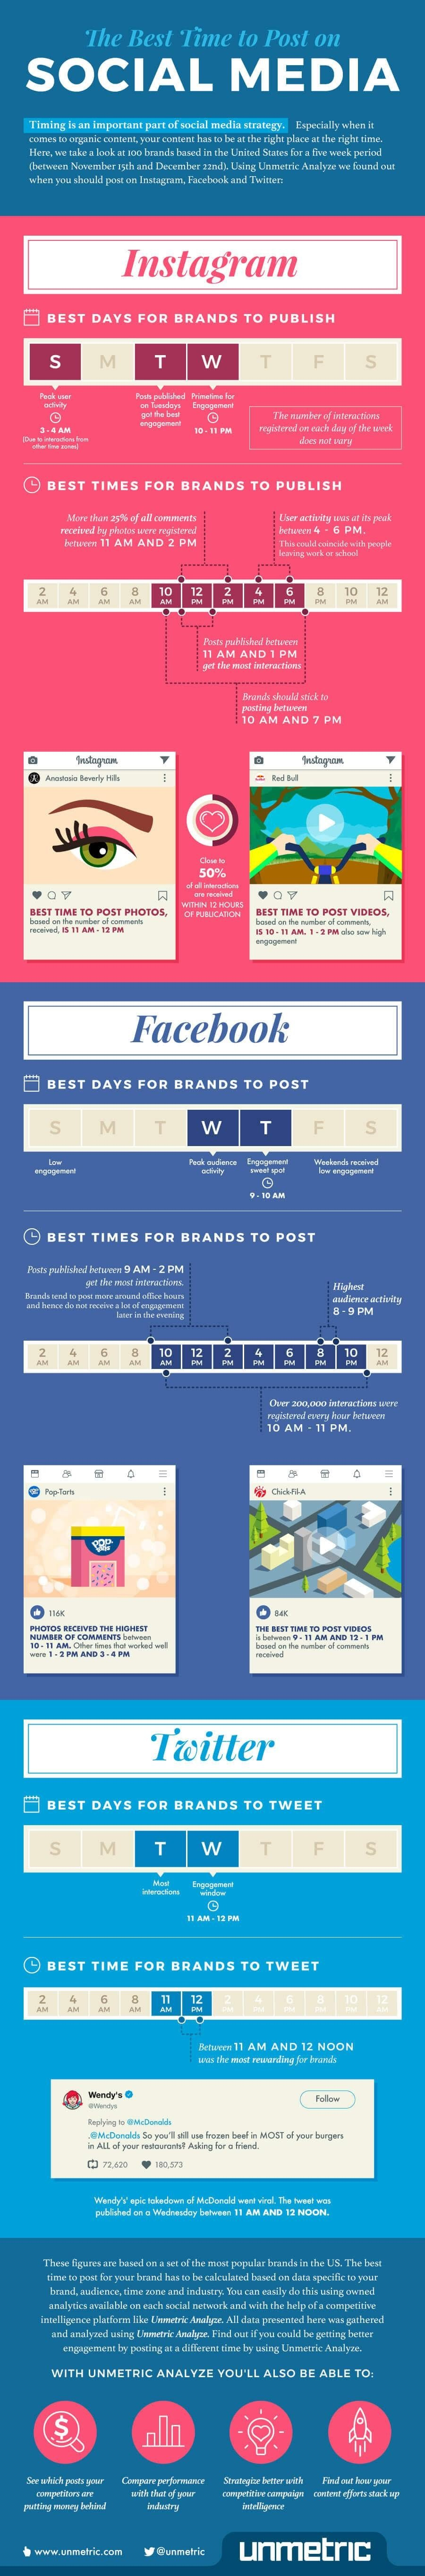 The Best Times and Days to Post on Facebook, Instagram and Twitter [Infographic] | Social Media Today